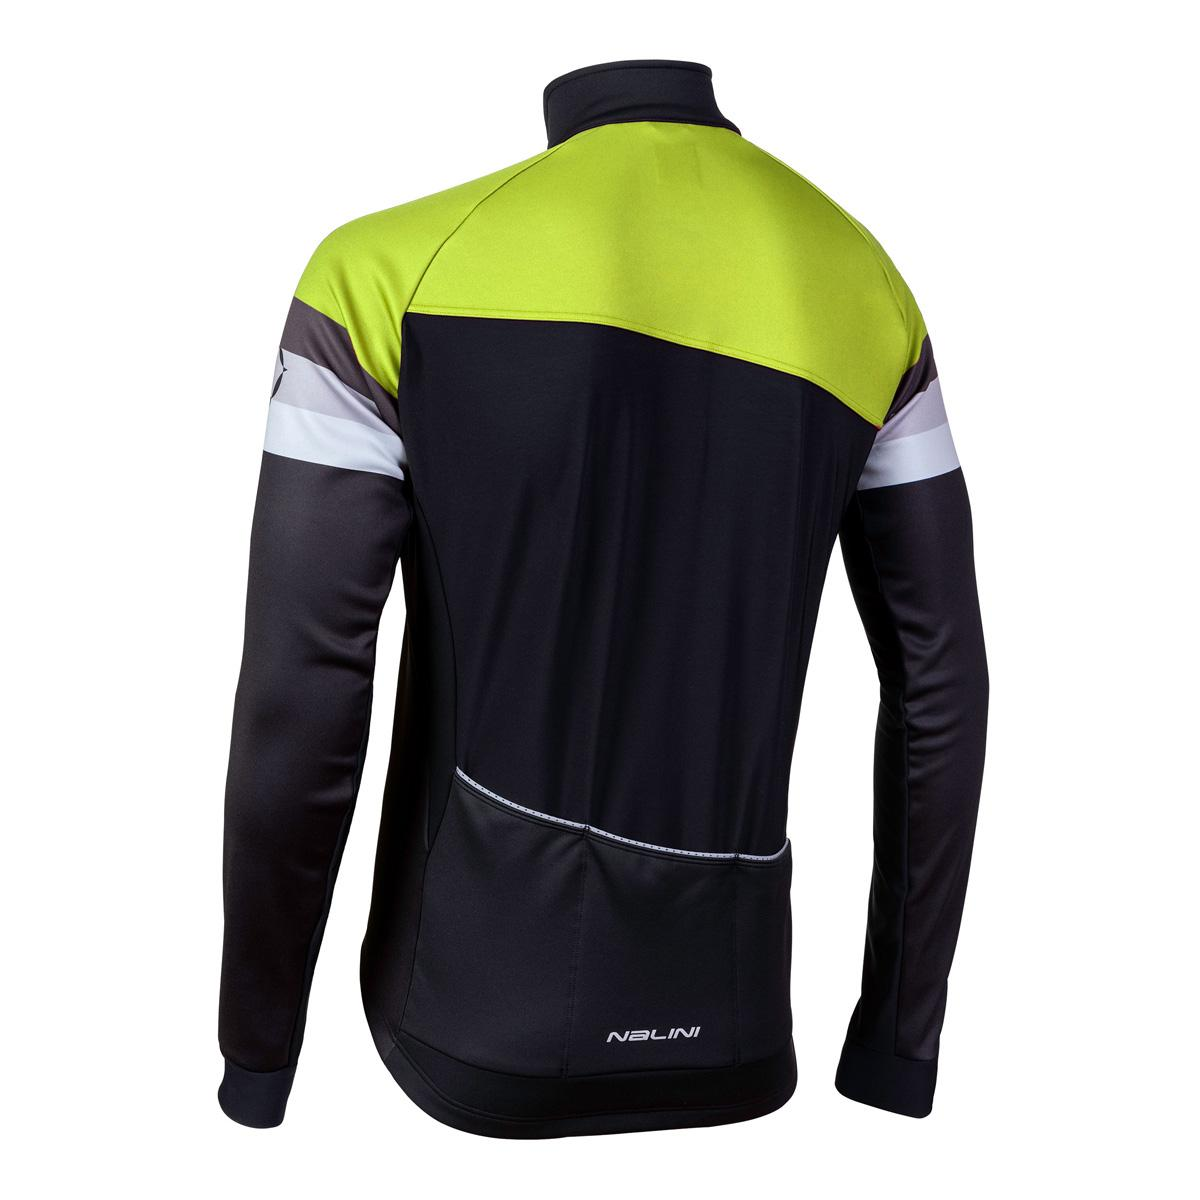 Afbeelding Nalini Fietsjack Heren Zwart Fluo - AIW CRIT WARM JACKET 2.0 WINTER JACKET BLACK/NEON YELLOW